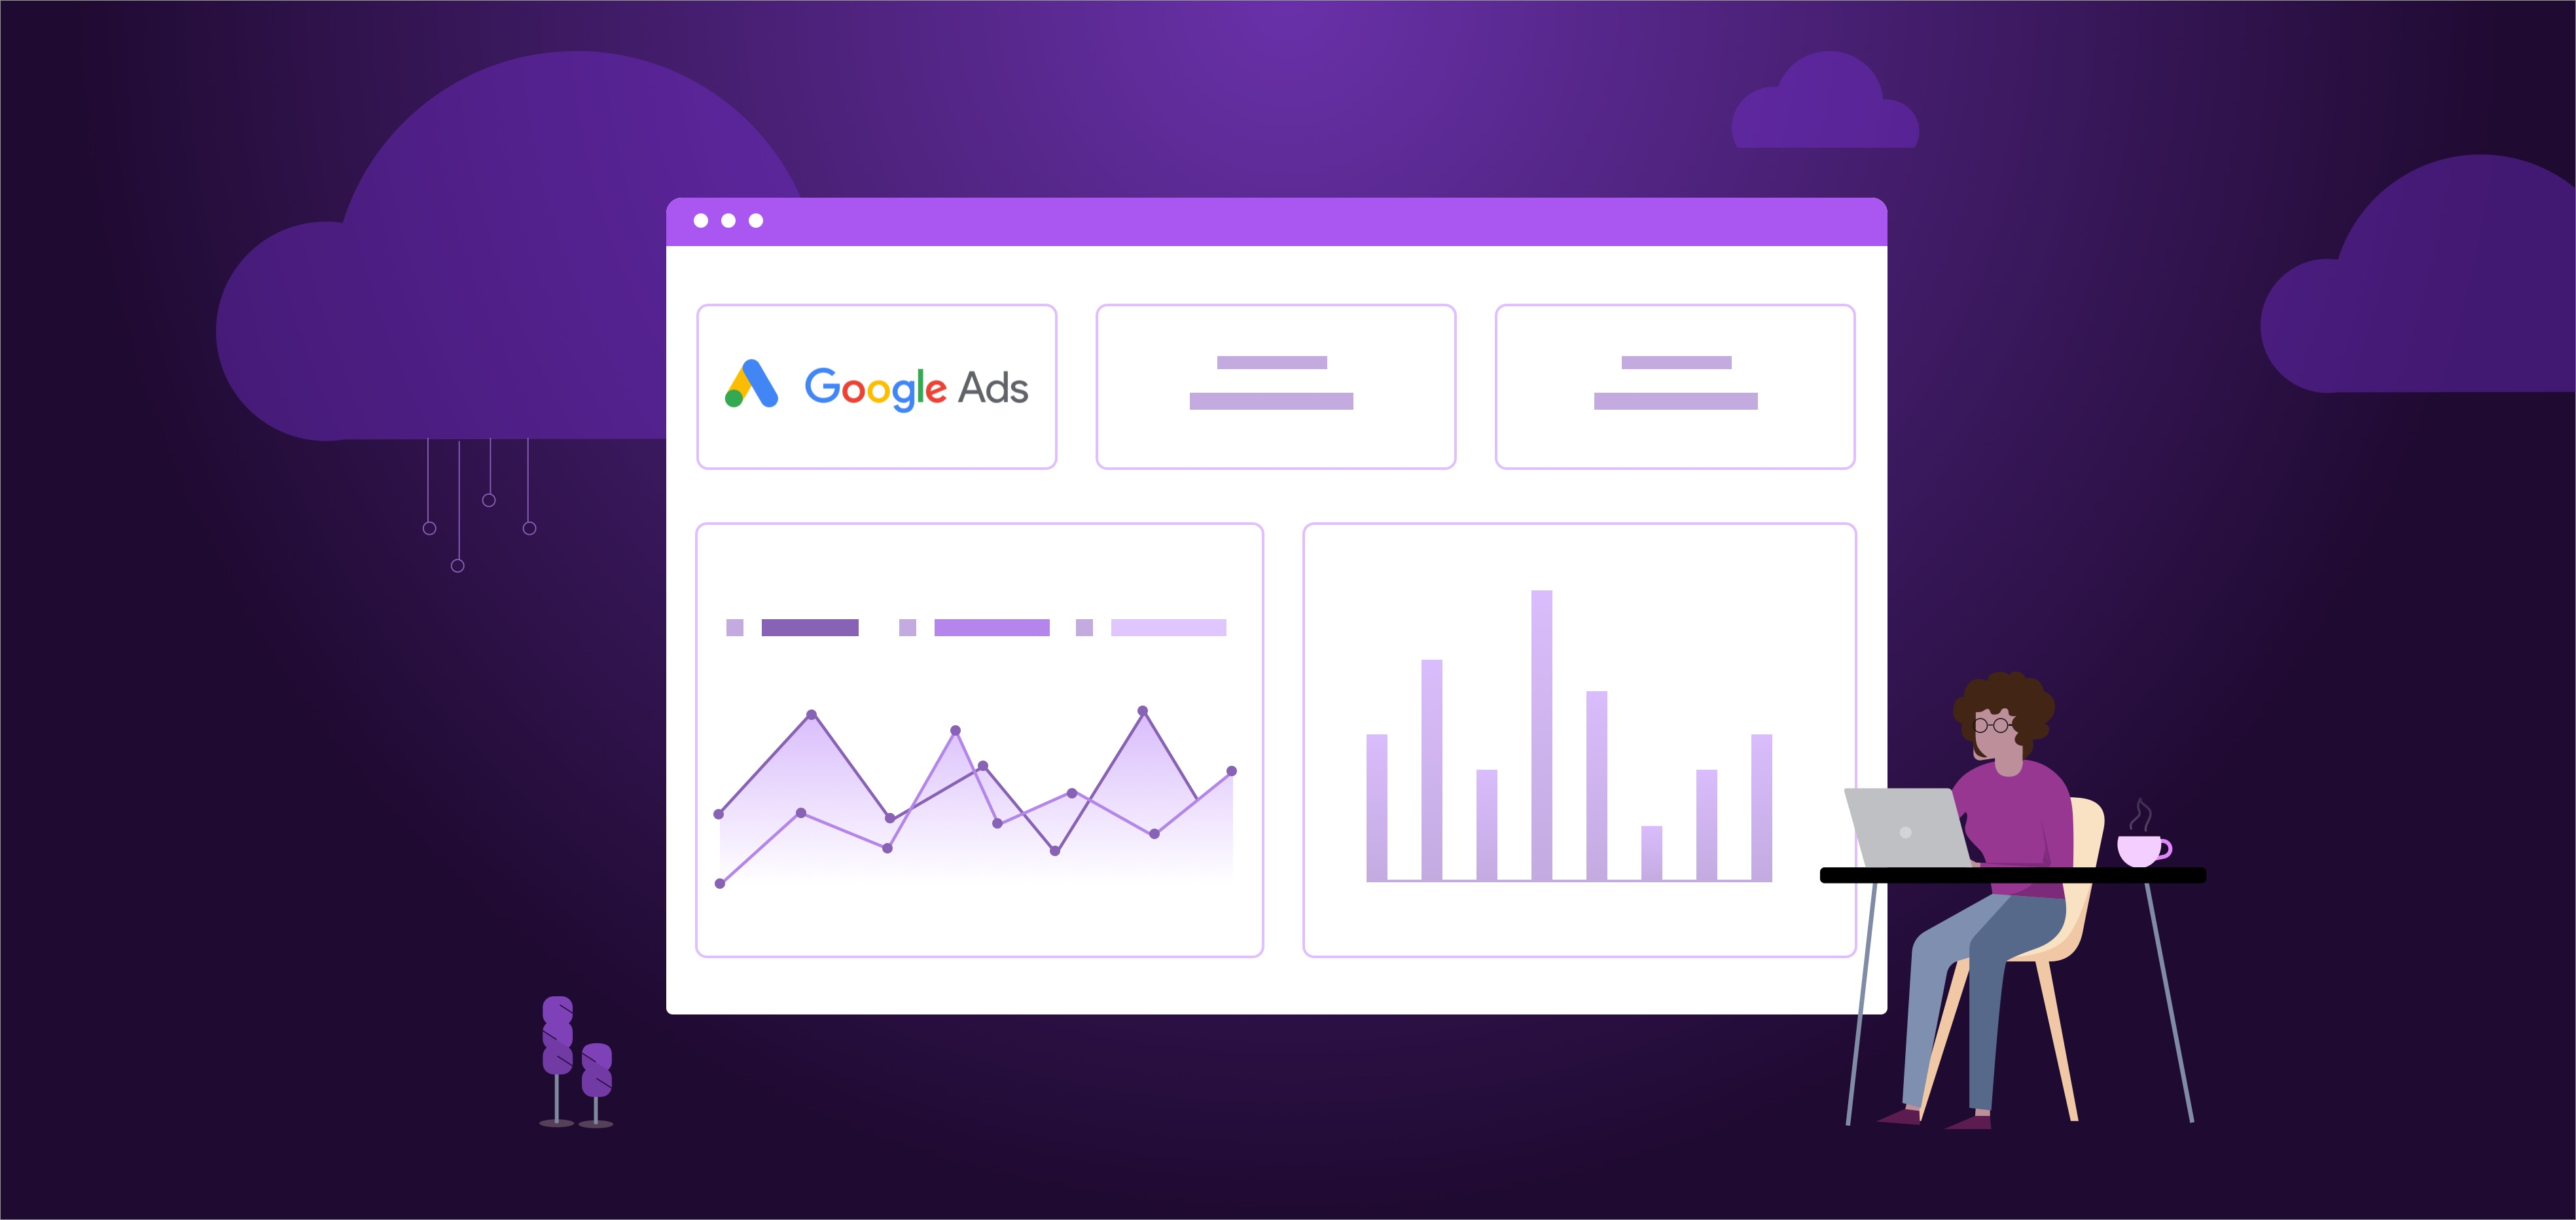 Monitoring Ad Performance in a Google Ads Dashboard